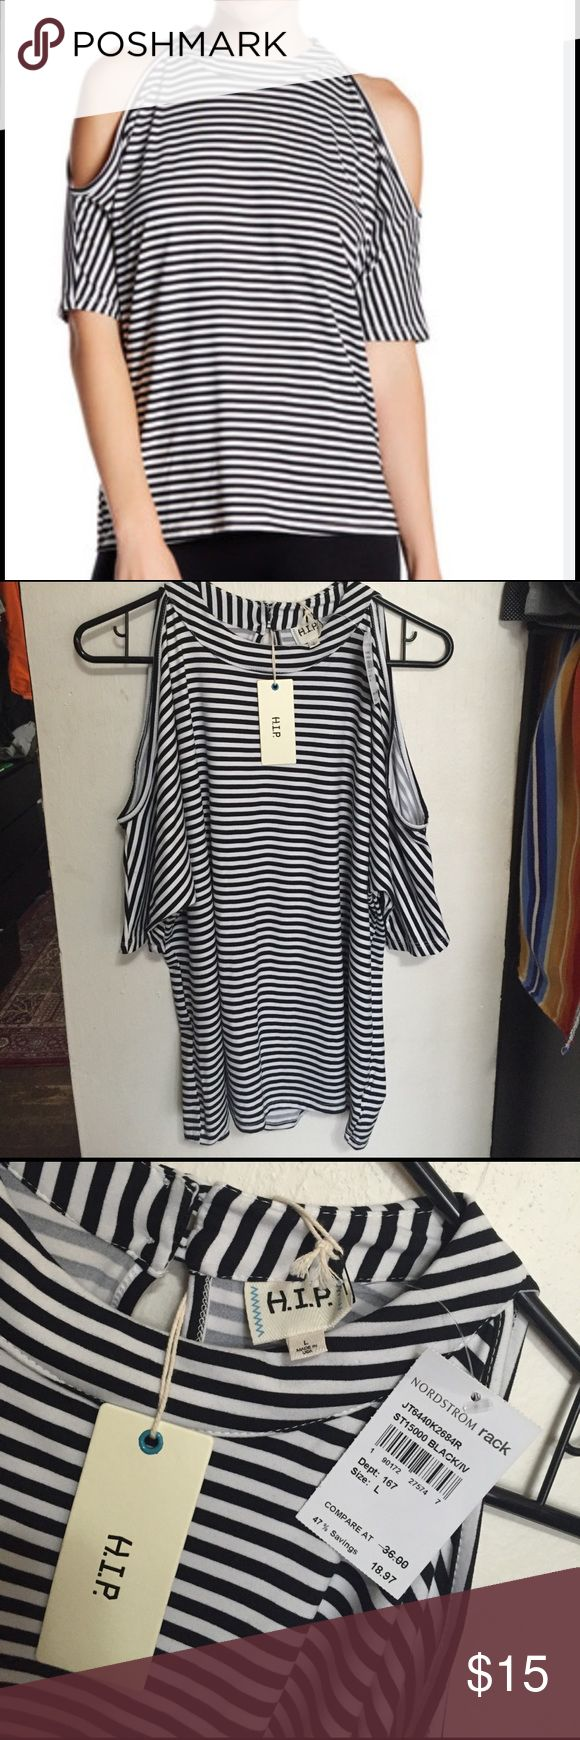 H.I.P. cutout shoulder b&w striped shirt Super cute, soft & good quality. Brand new, never worn, from nord rack. H.i.p. Tops